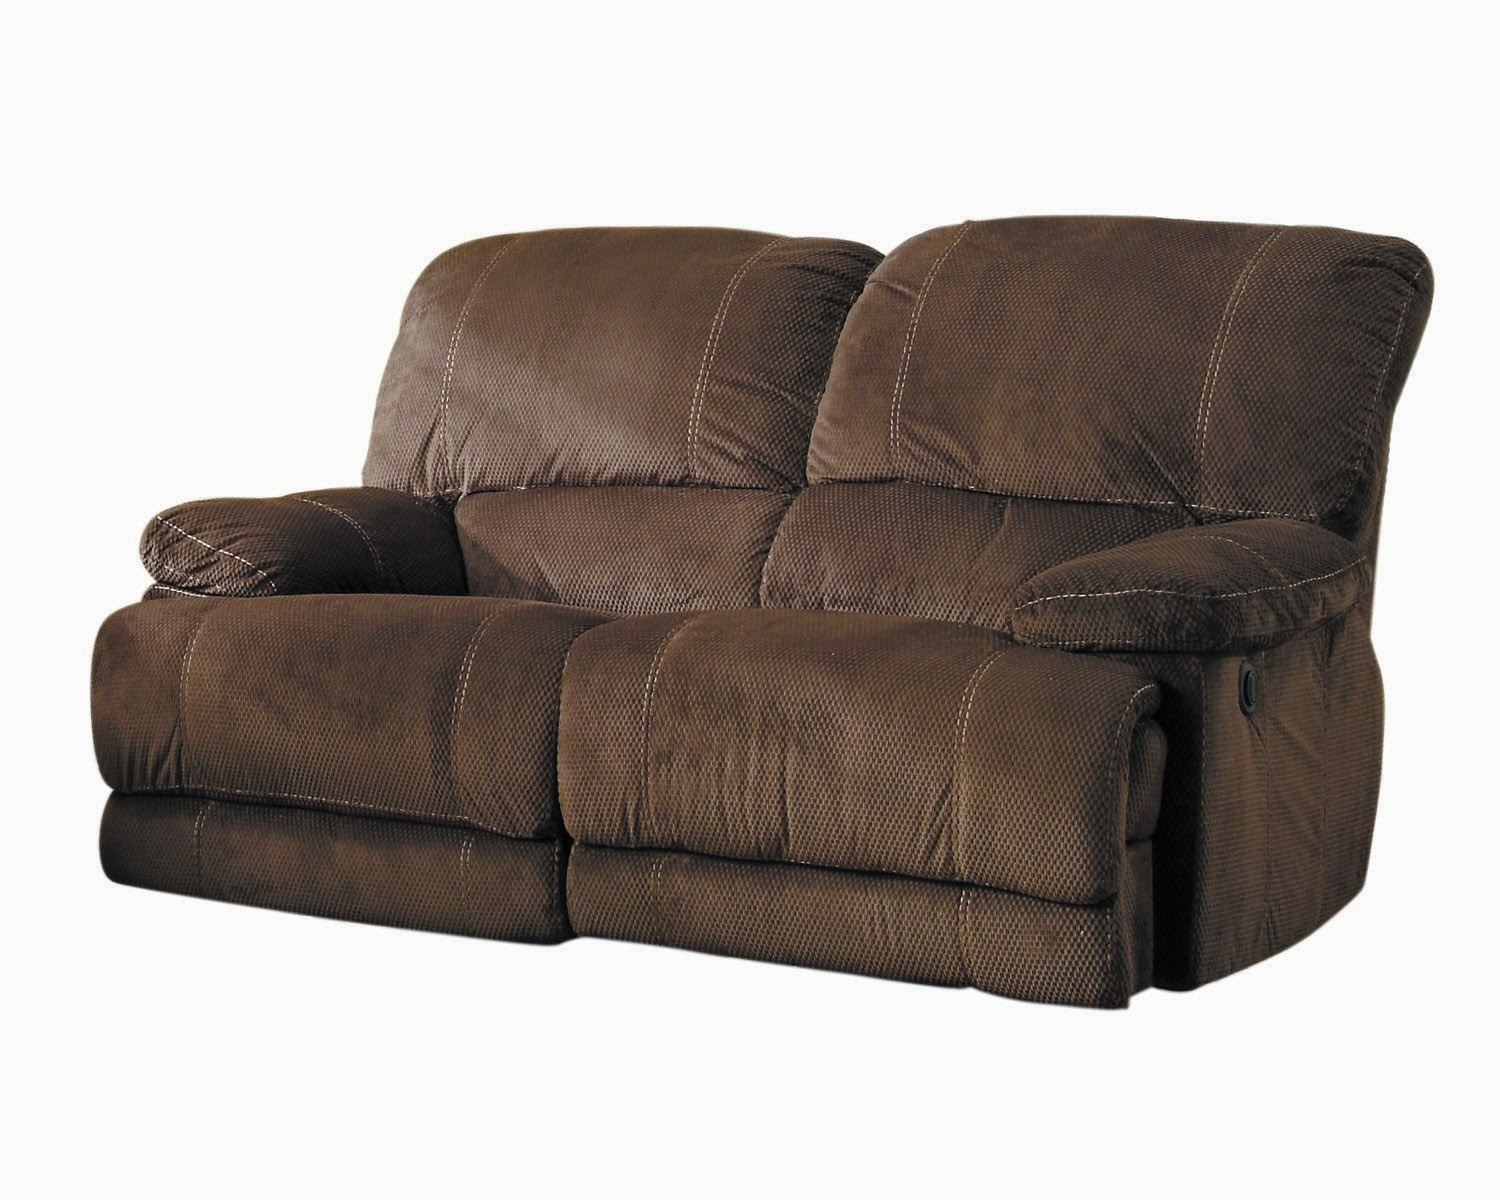 17 Catnapper Reclining Sofa Set Impulse Godiva